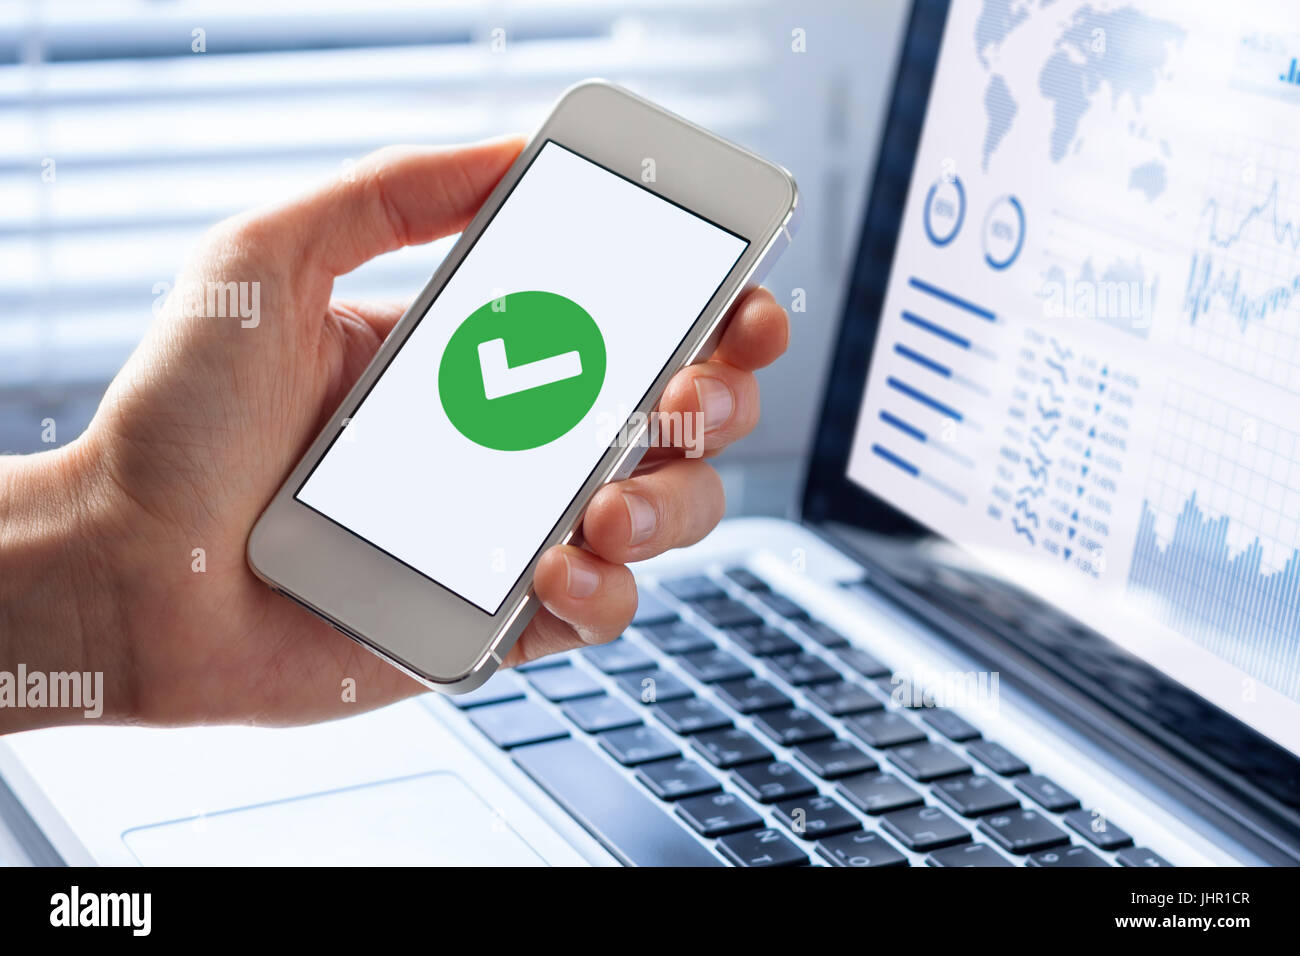 Hand holding a smartphone with a green checkmark icon on the screen to show a validated, confirmed, completed or Stock Photo